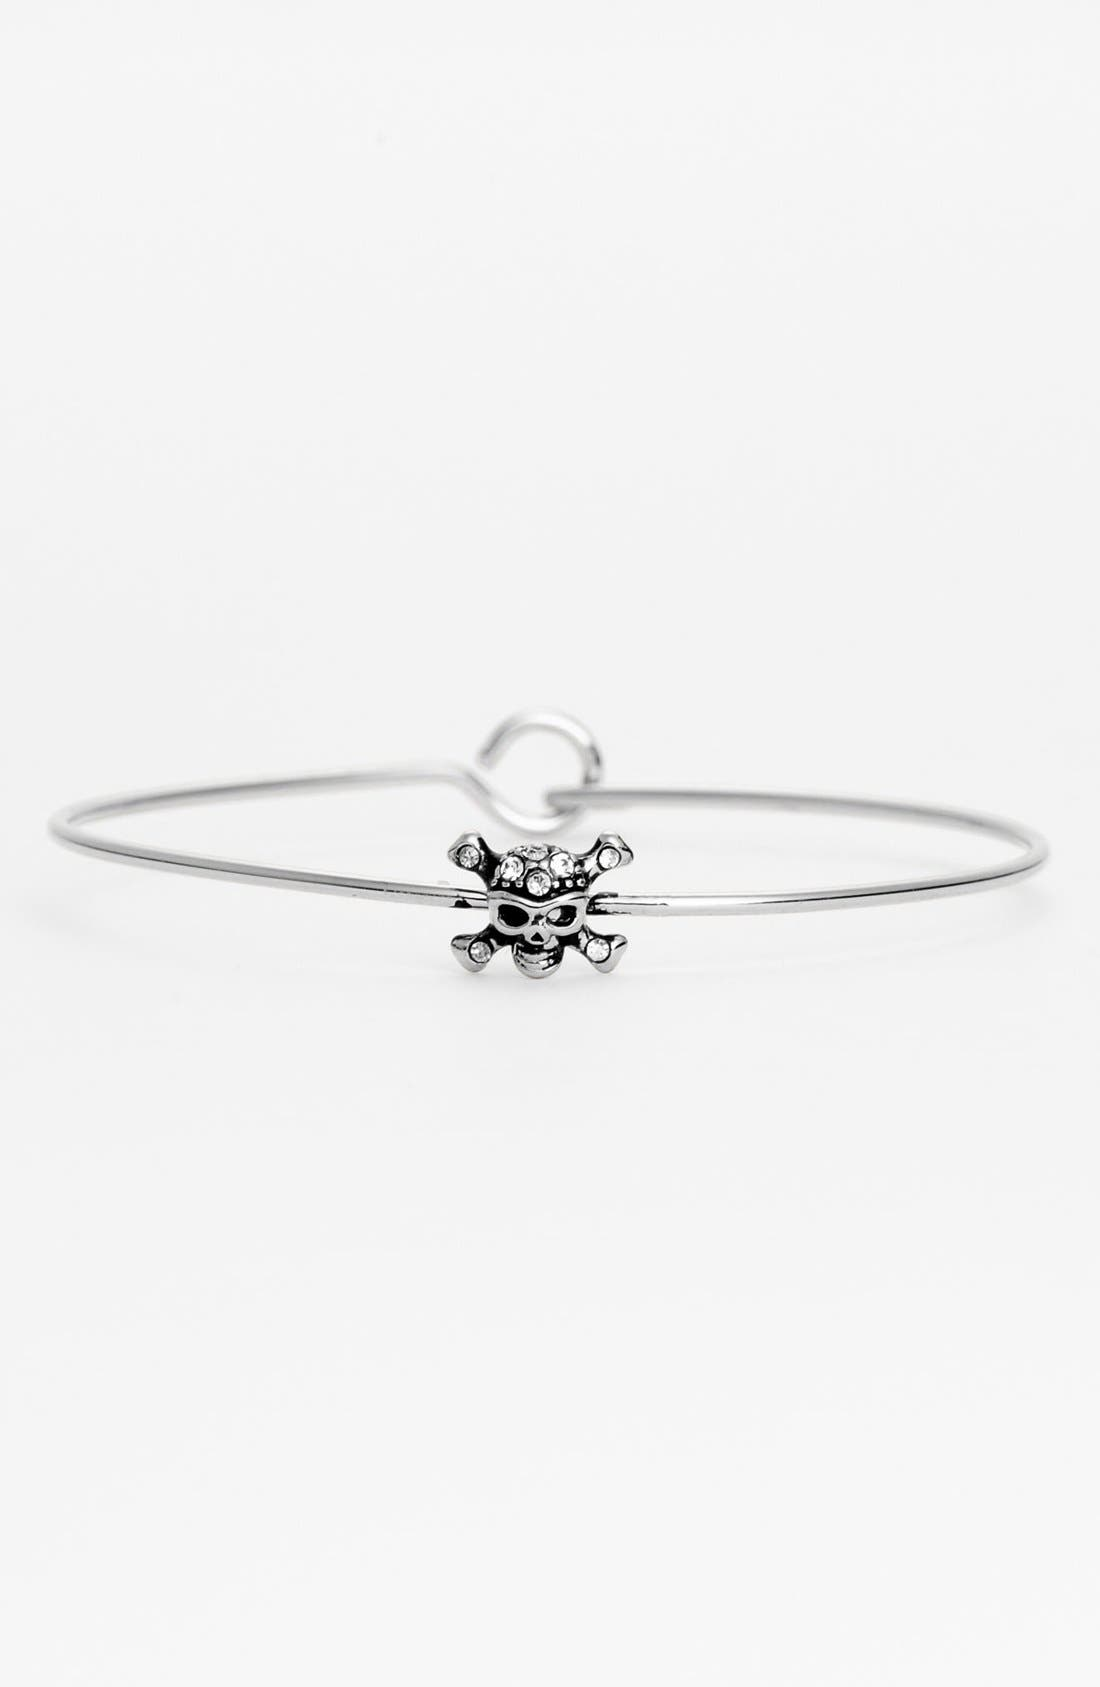 Main Image - Ariella Collection Skull Station Bangle Bracelet (Nordstrom Exclusive)